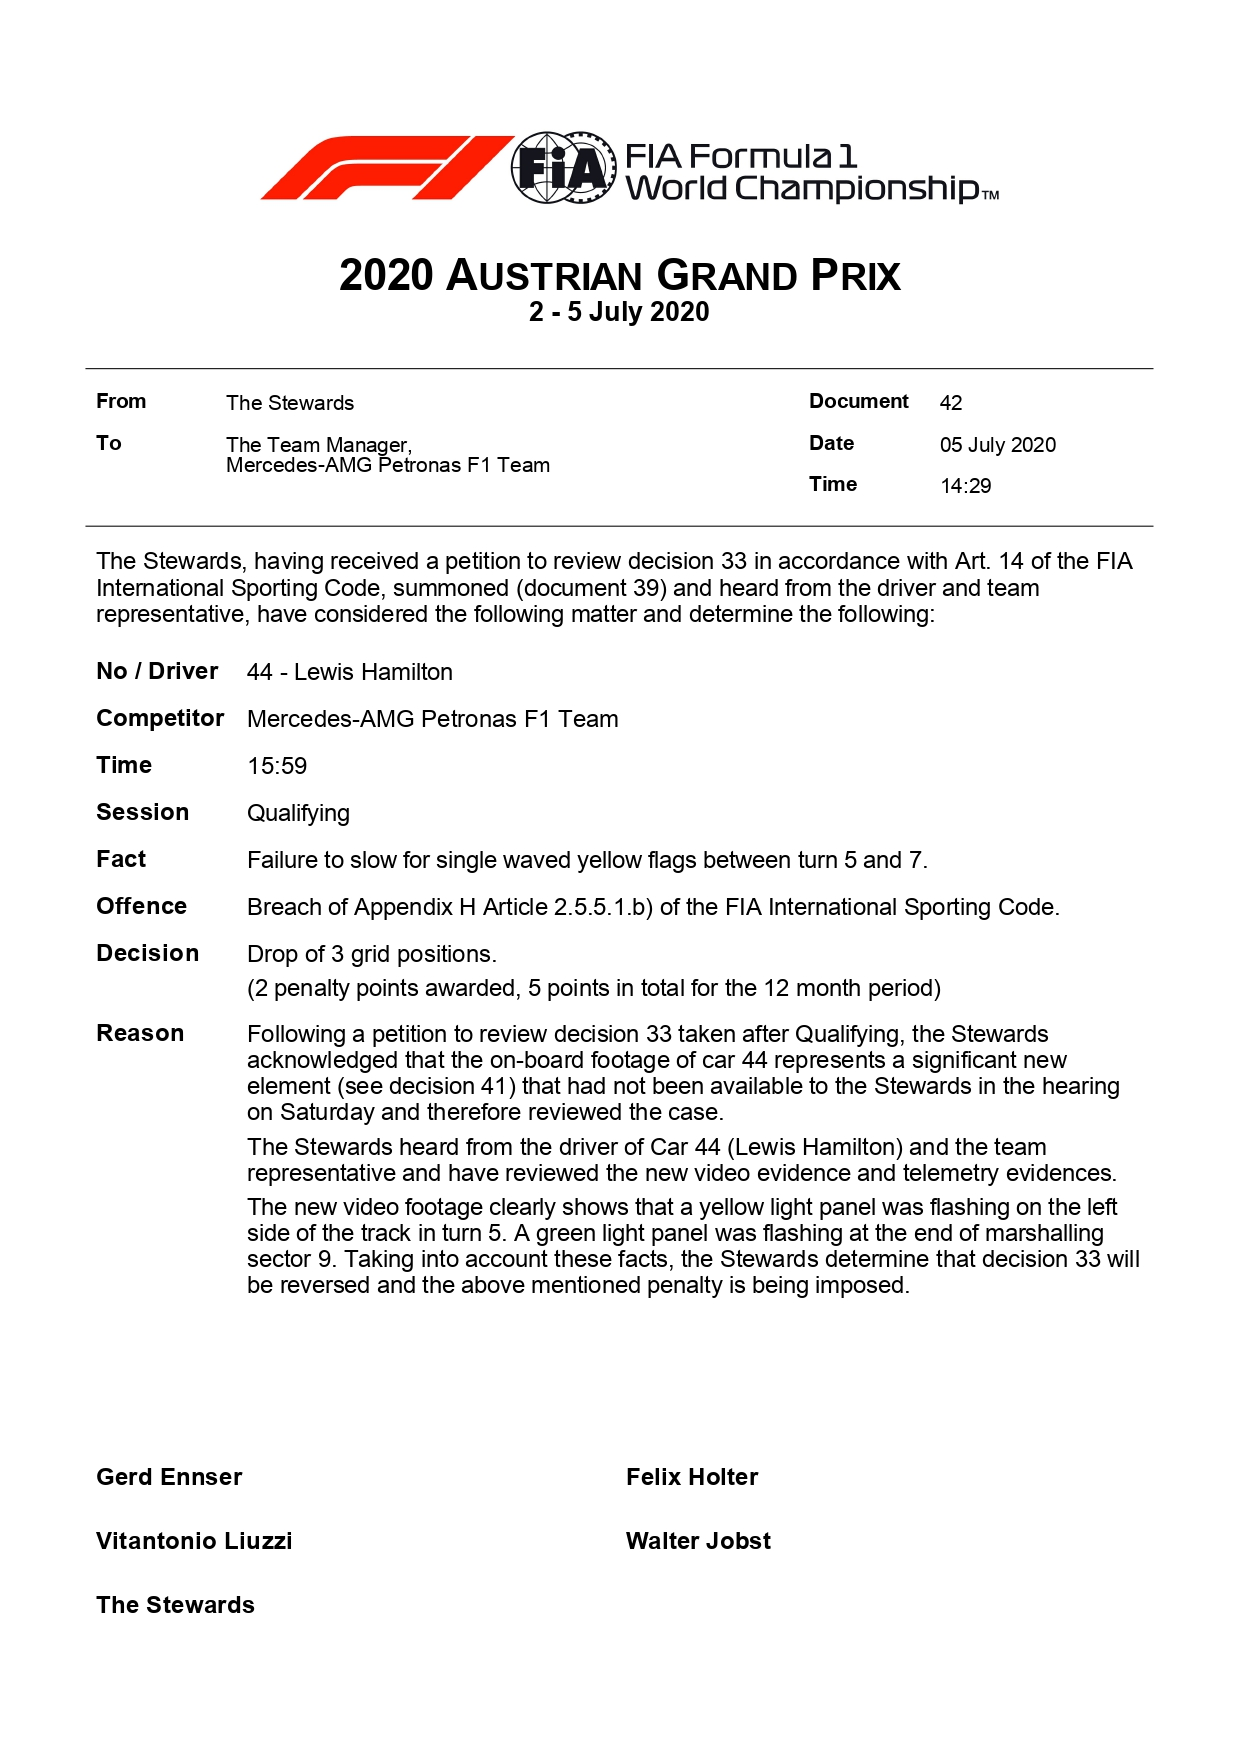 doc_42_-_2020_austrian_grand_prix_-_offence_-_car_44_-_failure_to_slow_for_yellow_flags_post_review_page-0001.jpg